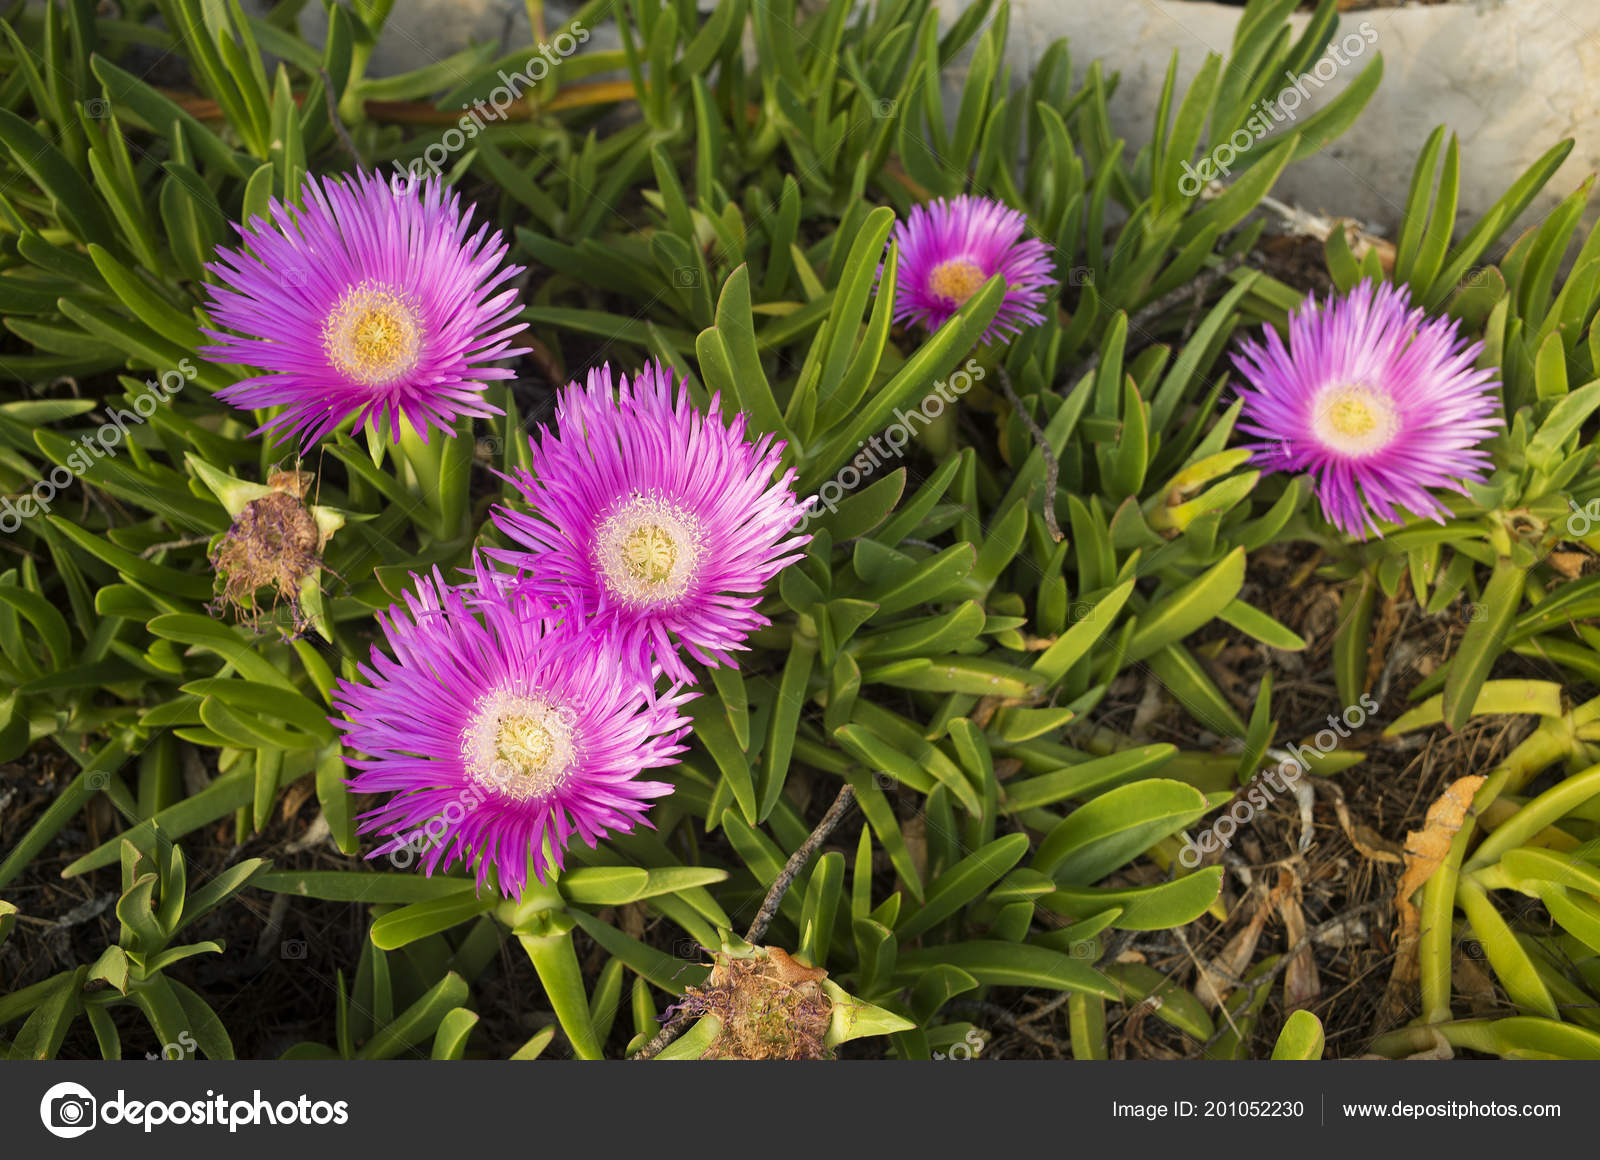 Details Beautiful Purple Yellow Flowers Croatia Sunny Spring Day